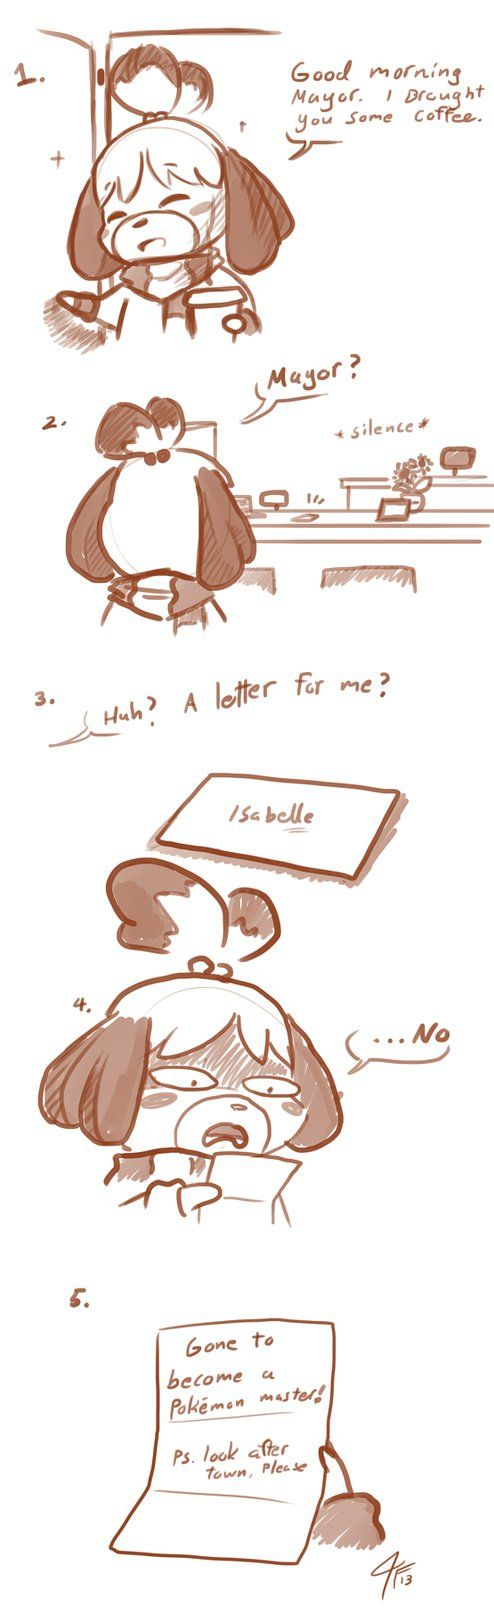 Meanwhile in New Leaf by TamarinFrog on deviantART